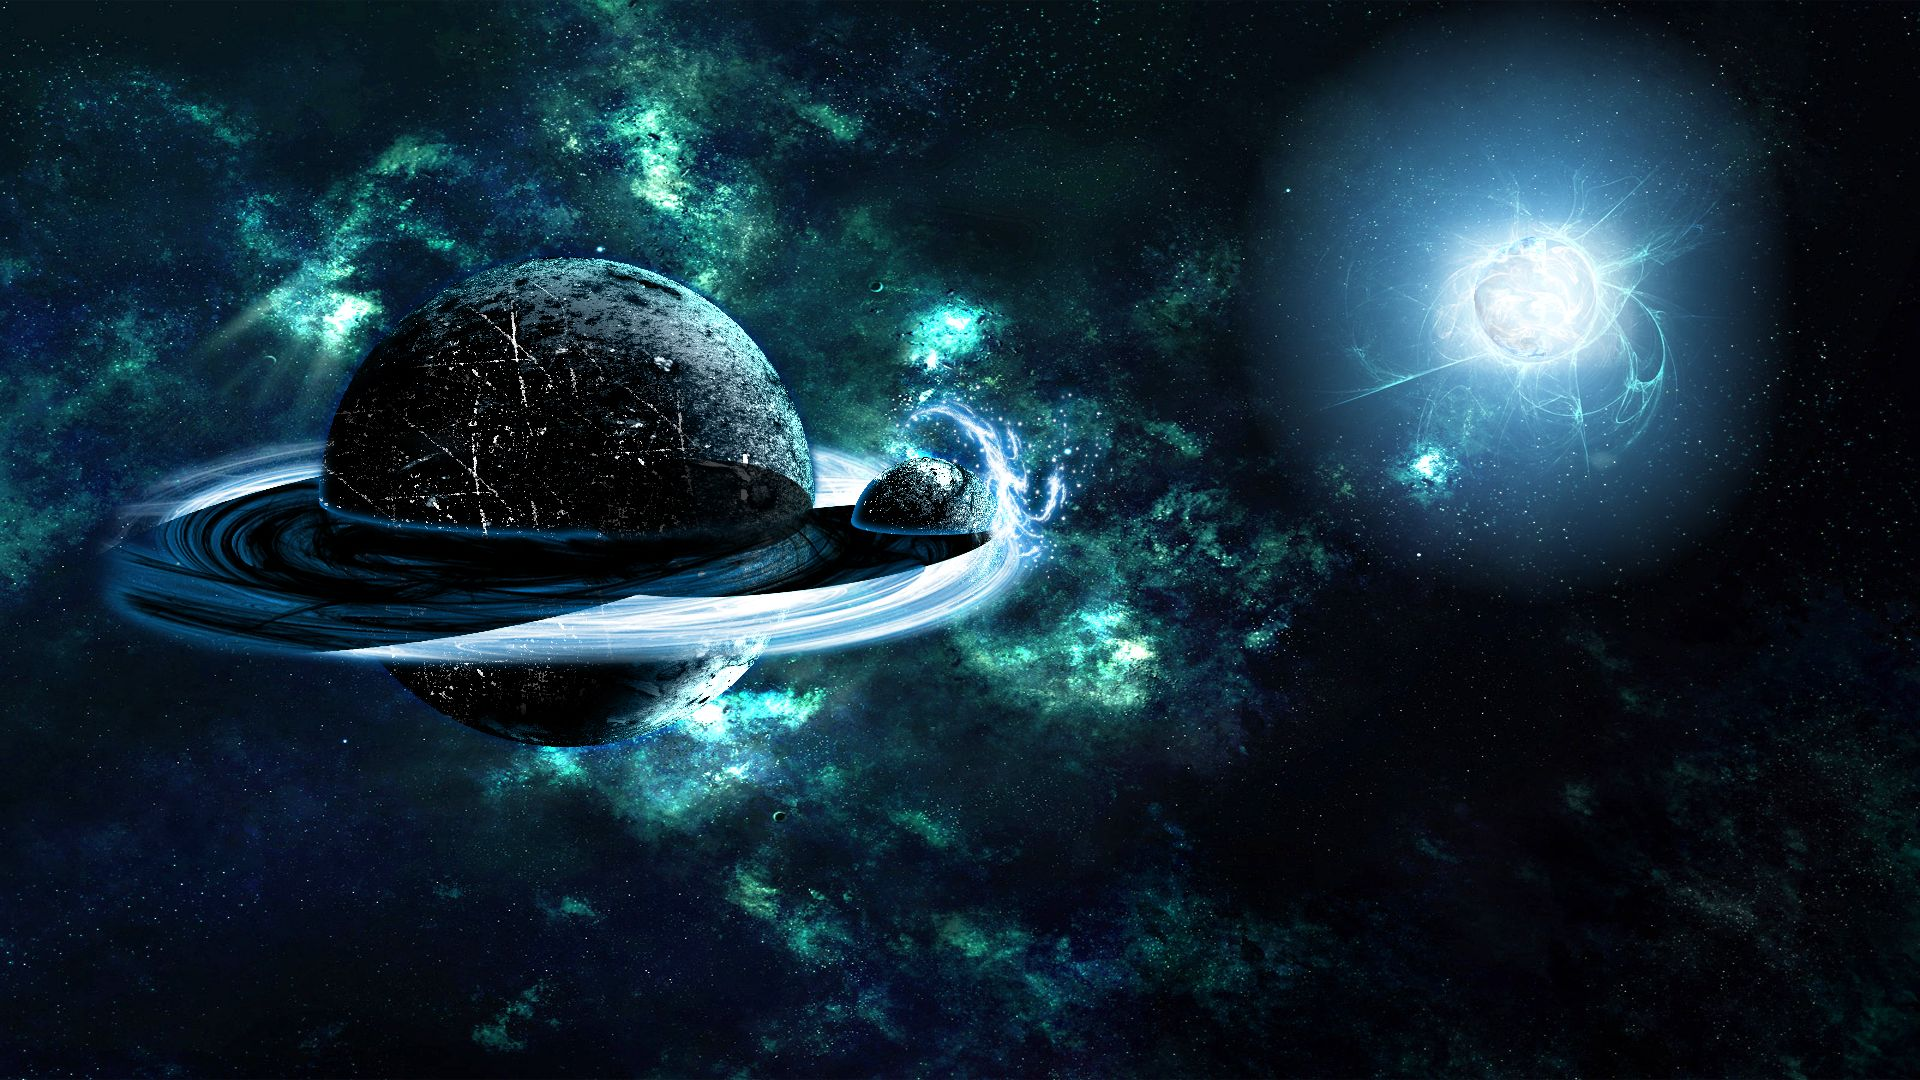 space wallpapers high quality | download free